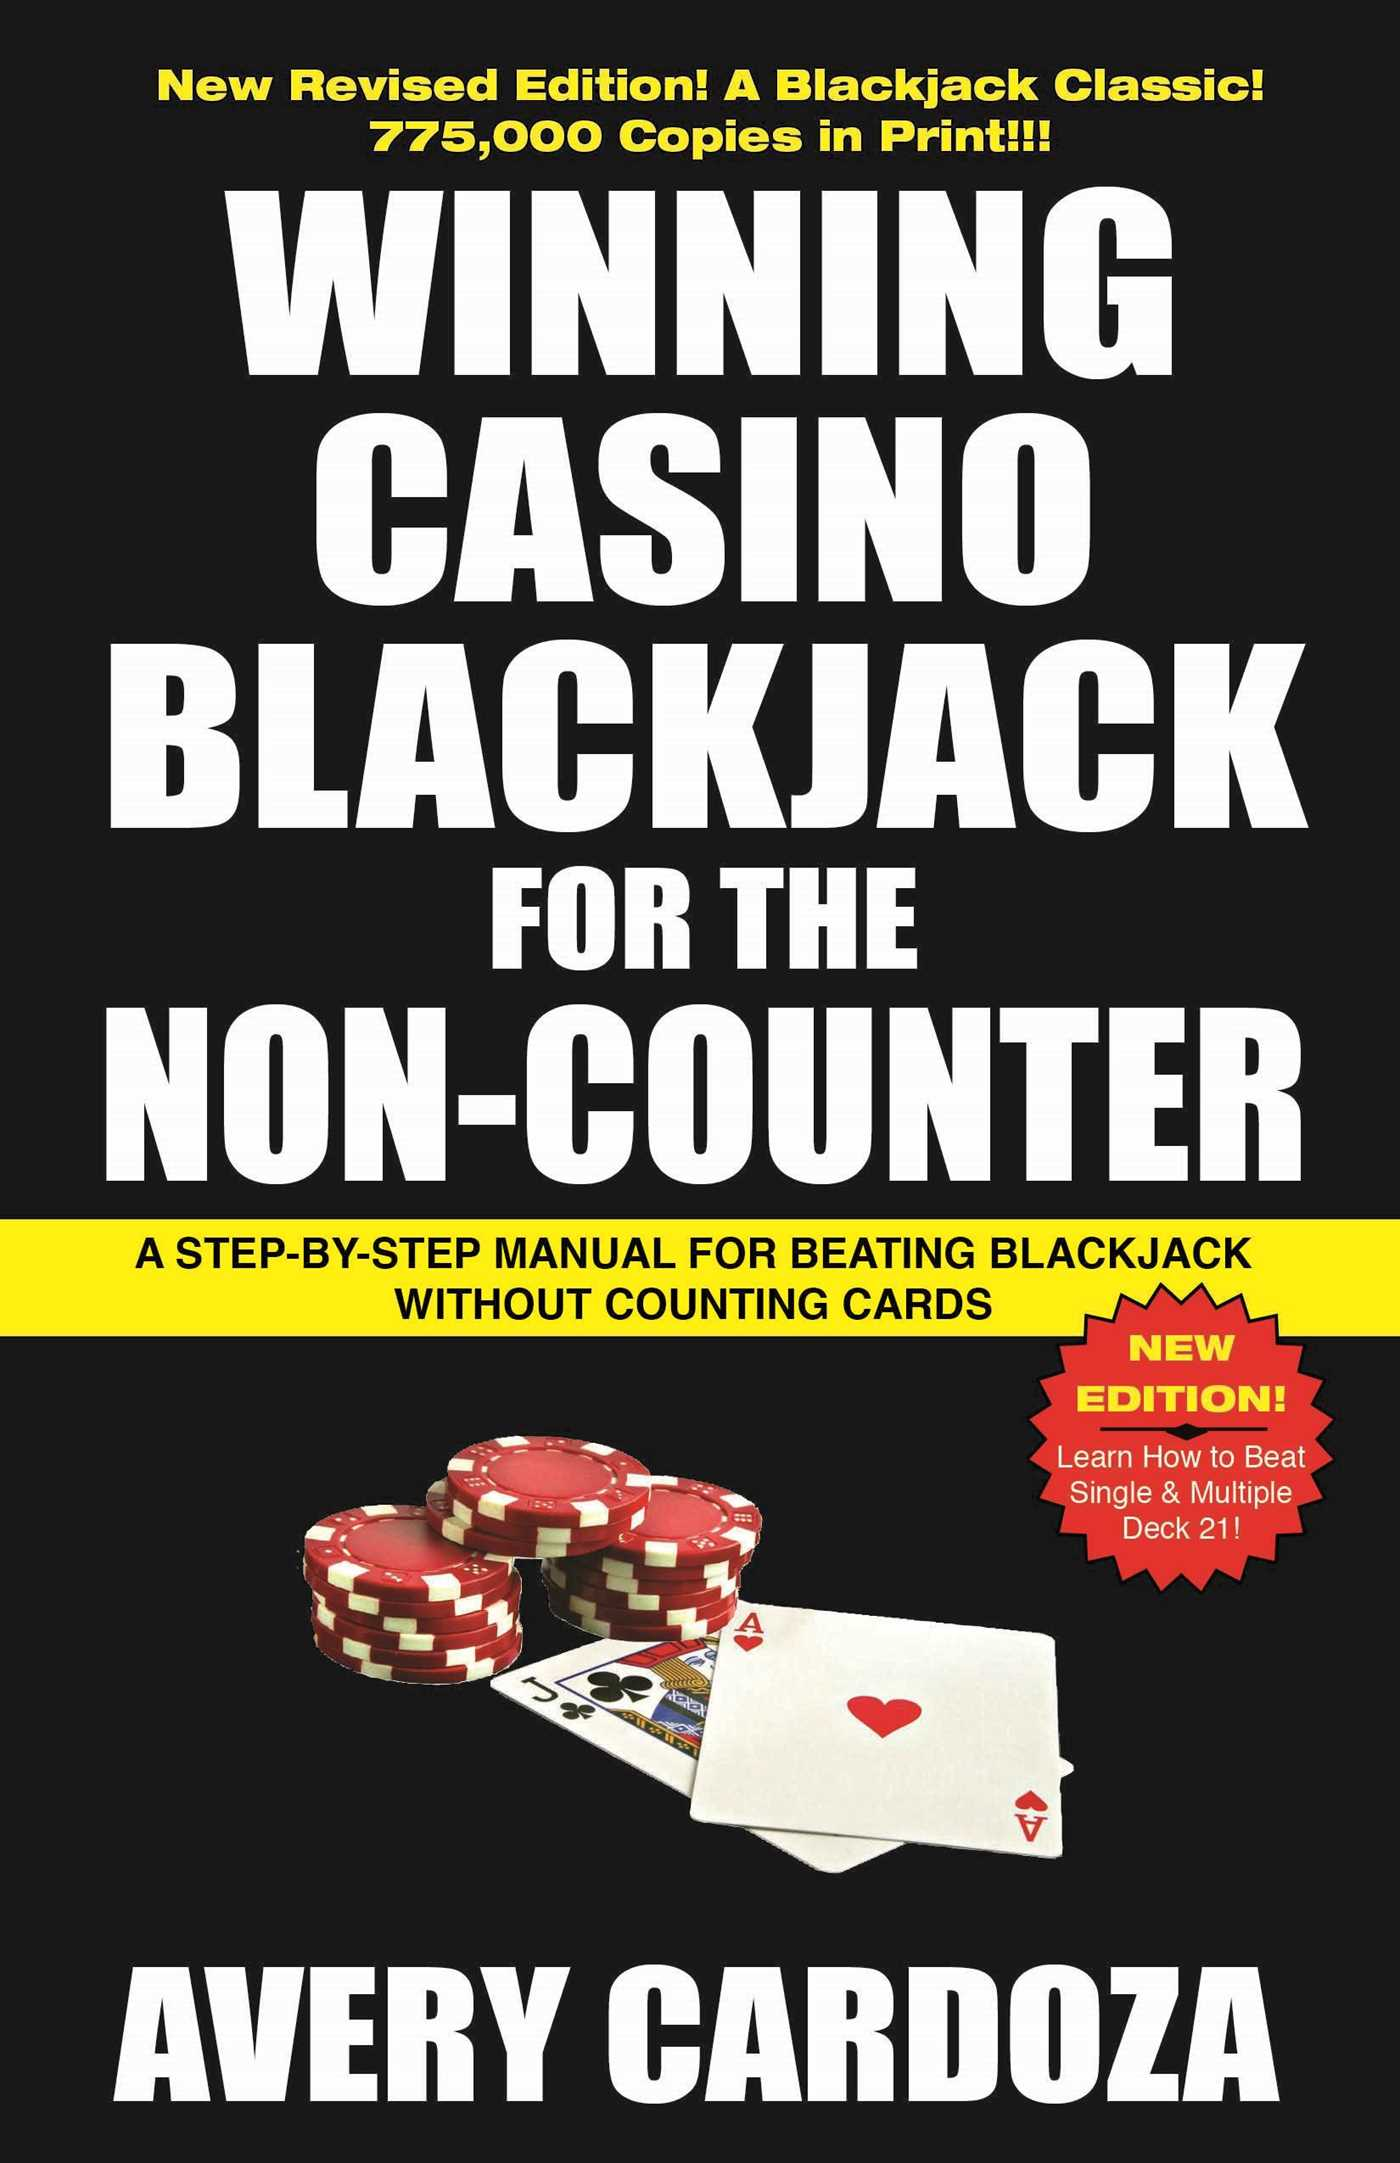 How to beat blackjack without counting how does the pass line work in craps